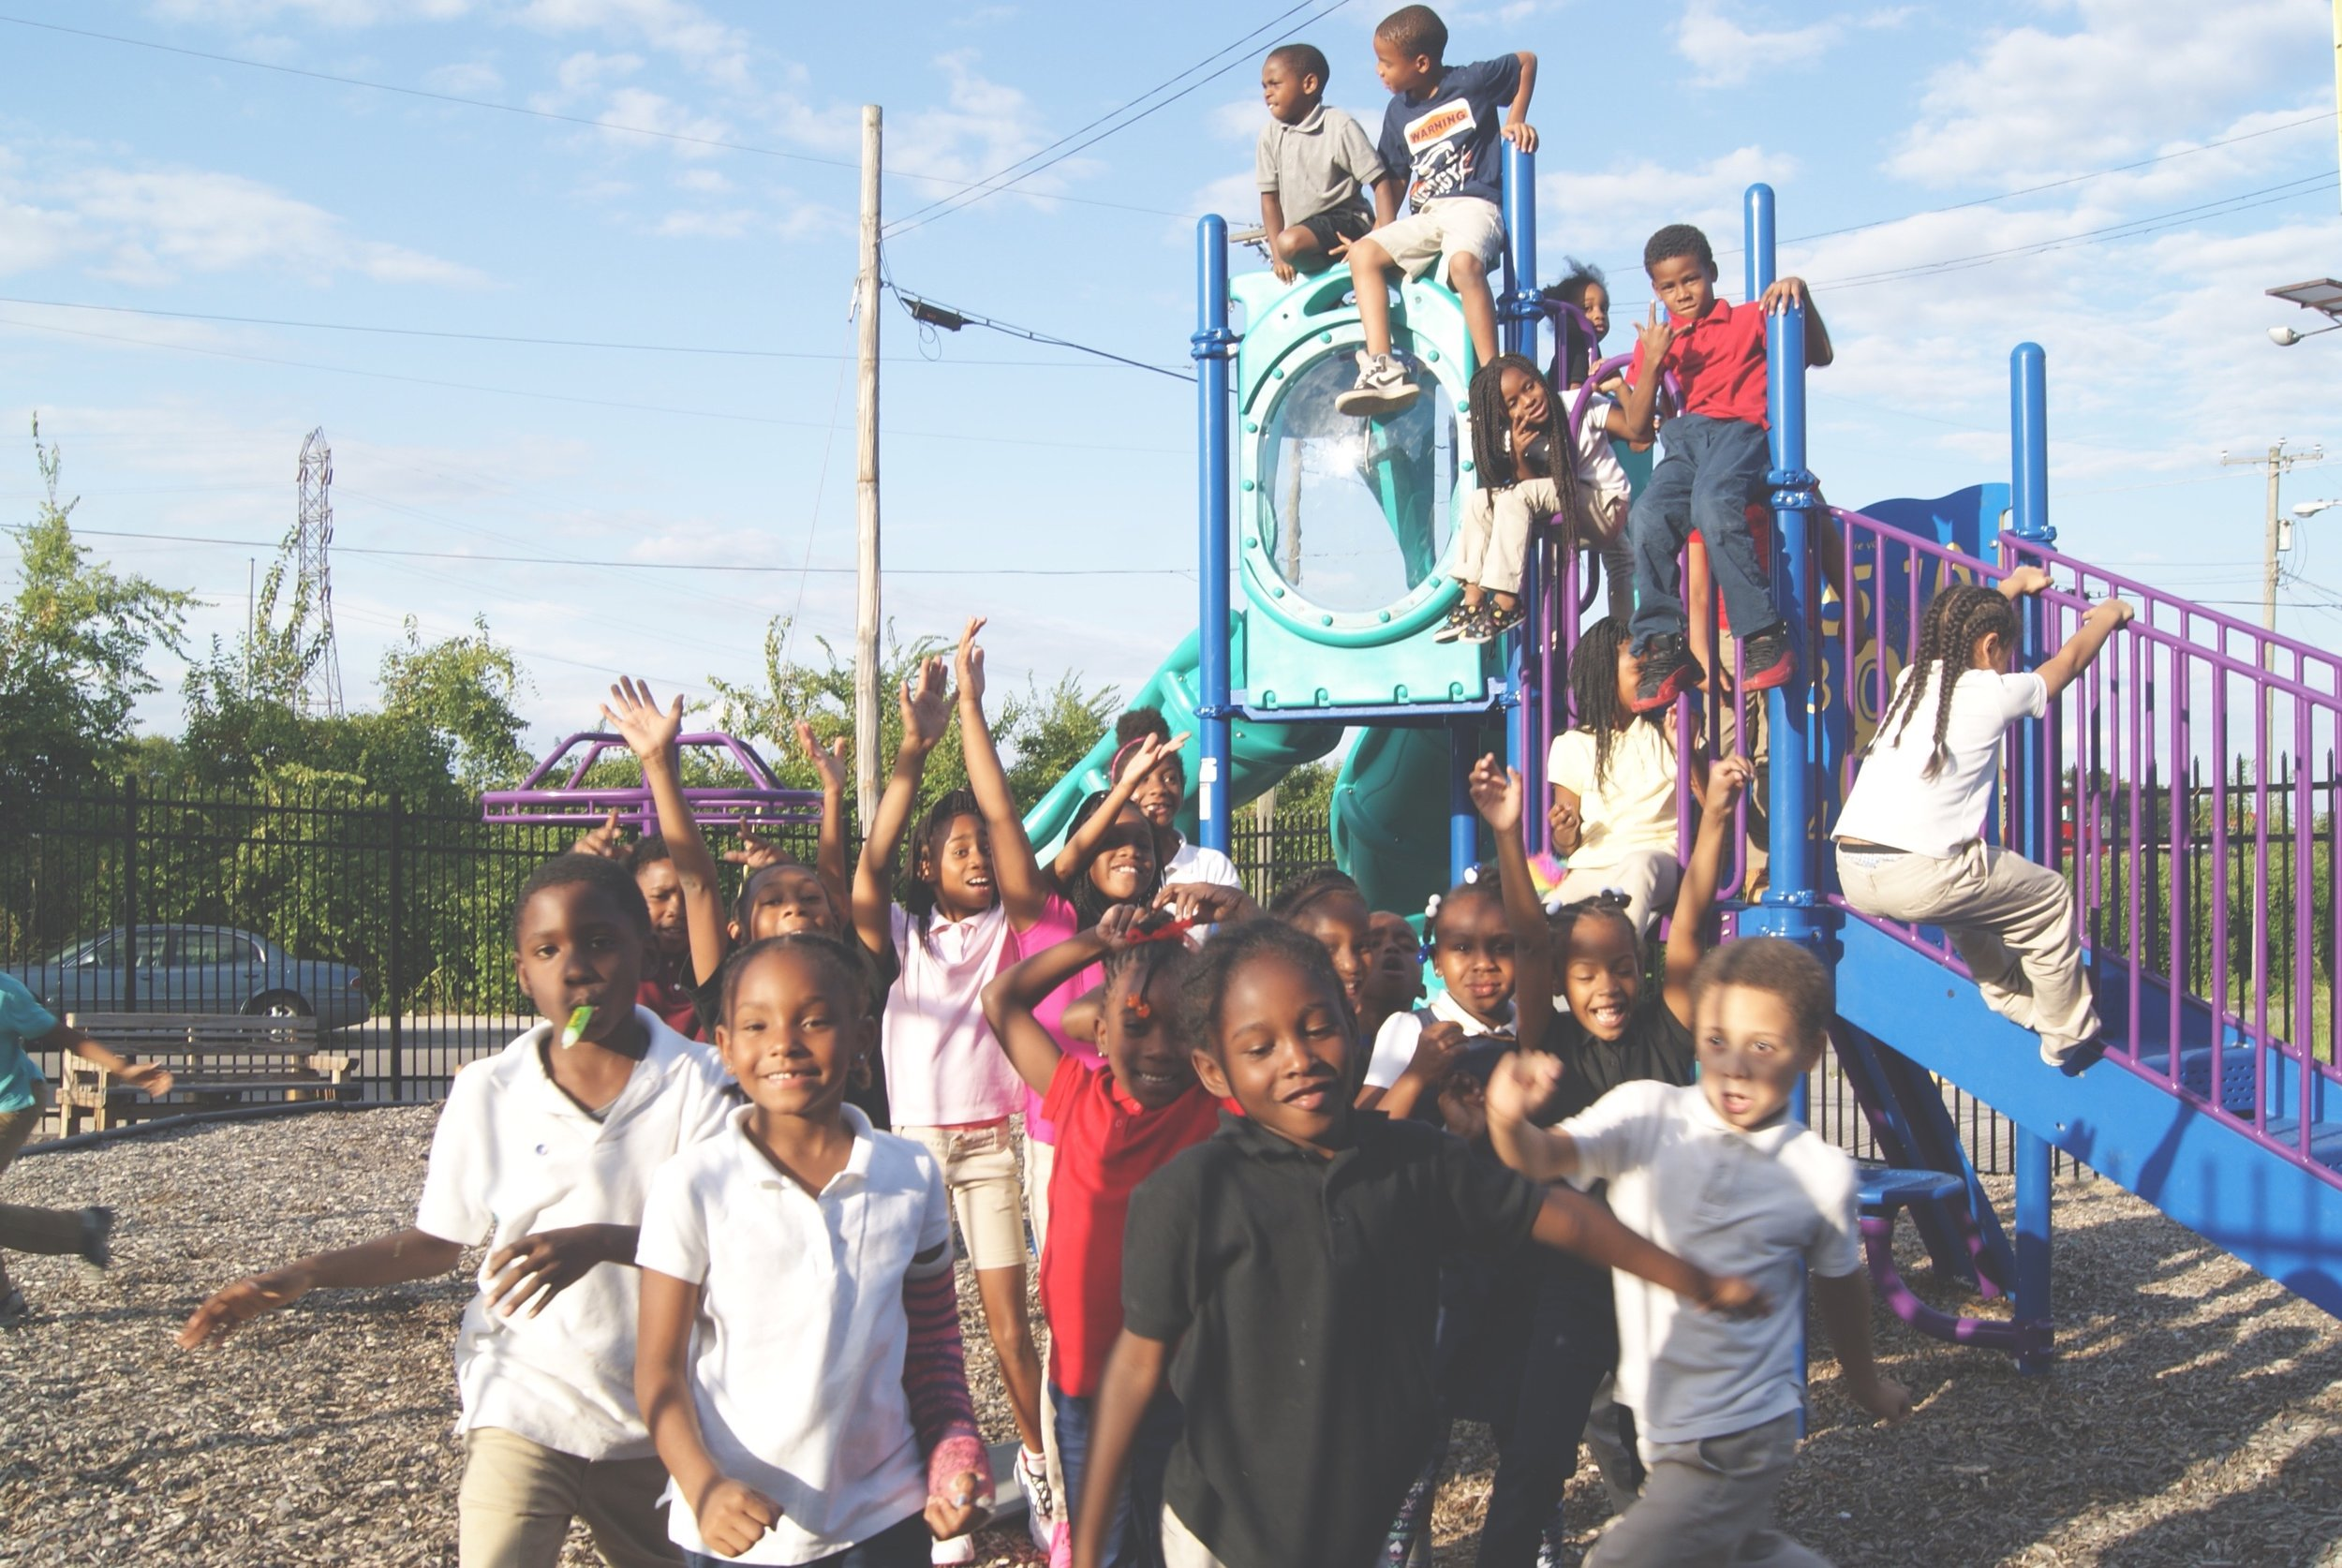 2017  | Doubled the number of students we serve in after school programs, grew sports leagues, and added summer employment opportunities in Humphreys Street, our social enterprise.